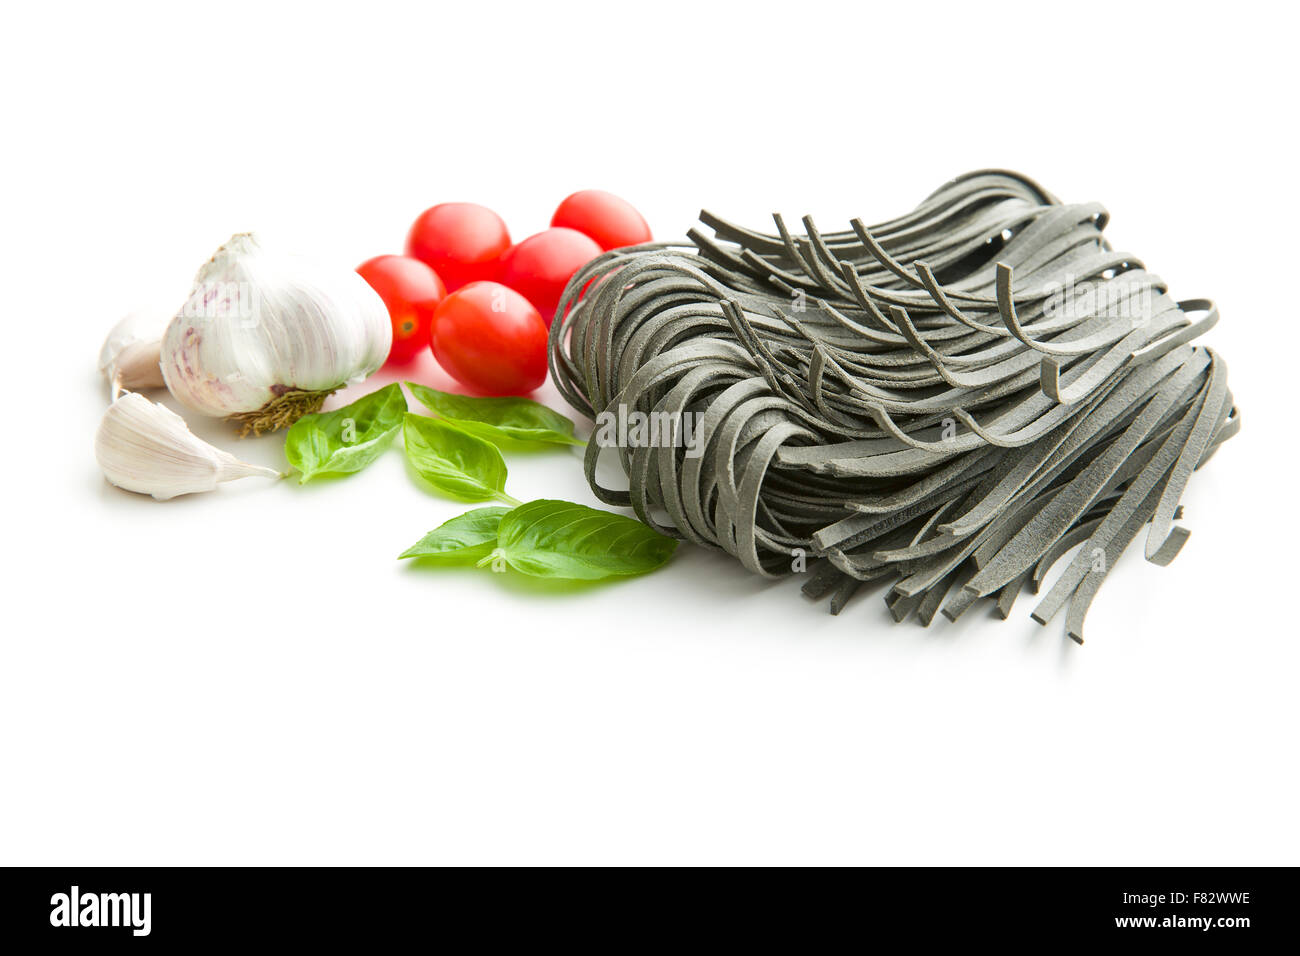 noodles, garlic, tomatoes and basil leaves on white background - Stock Image